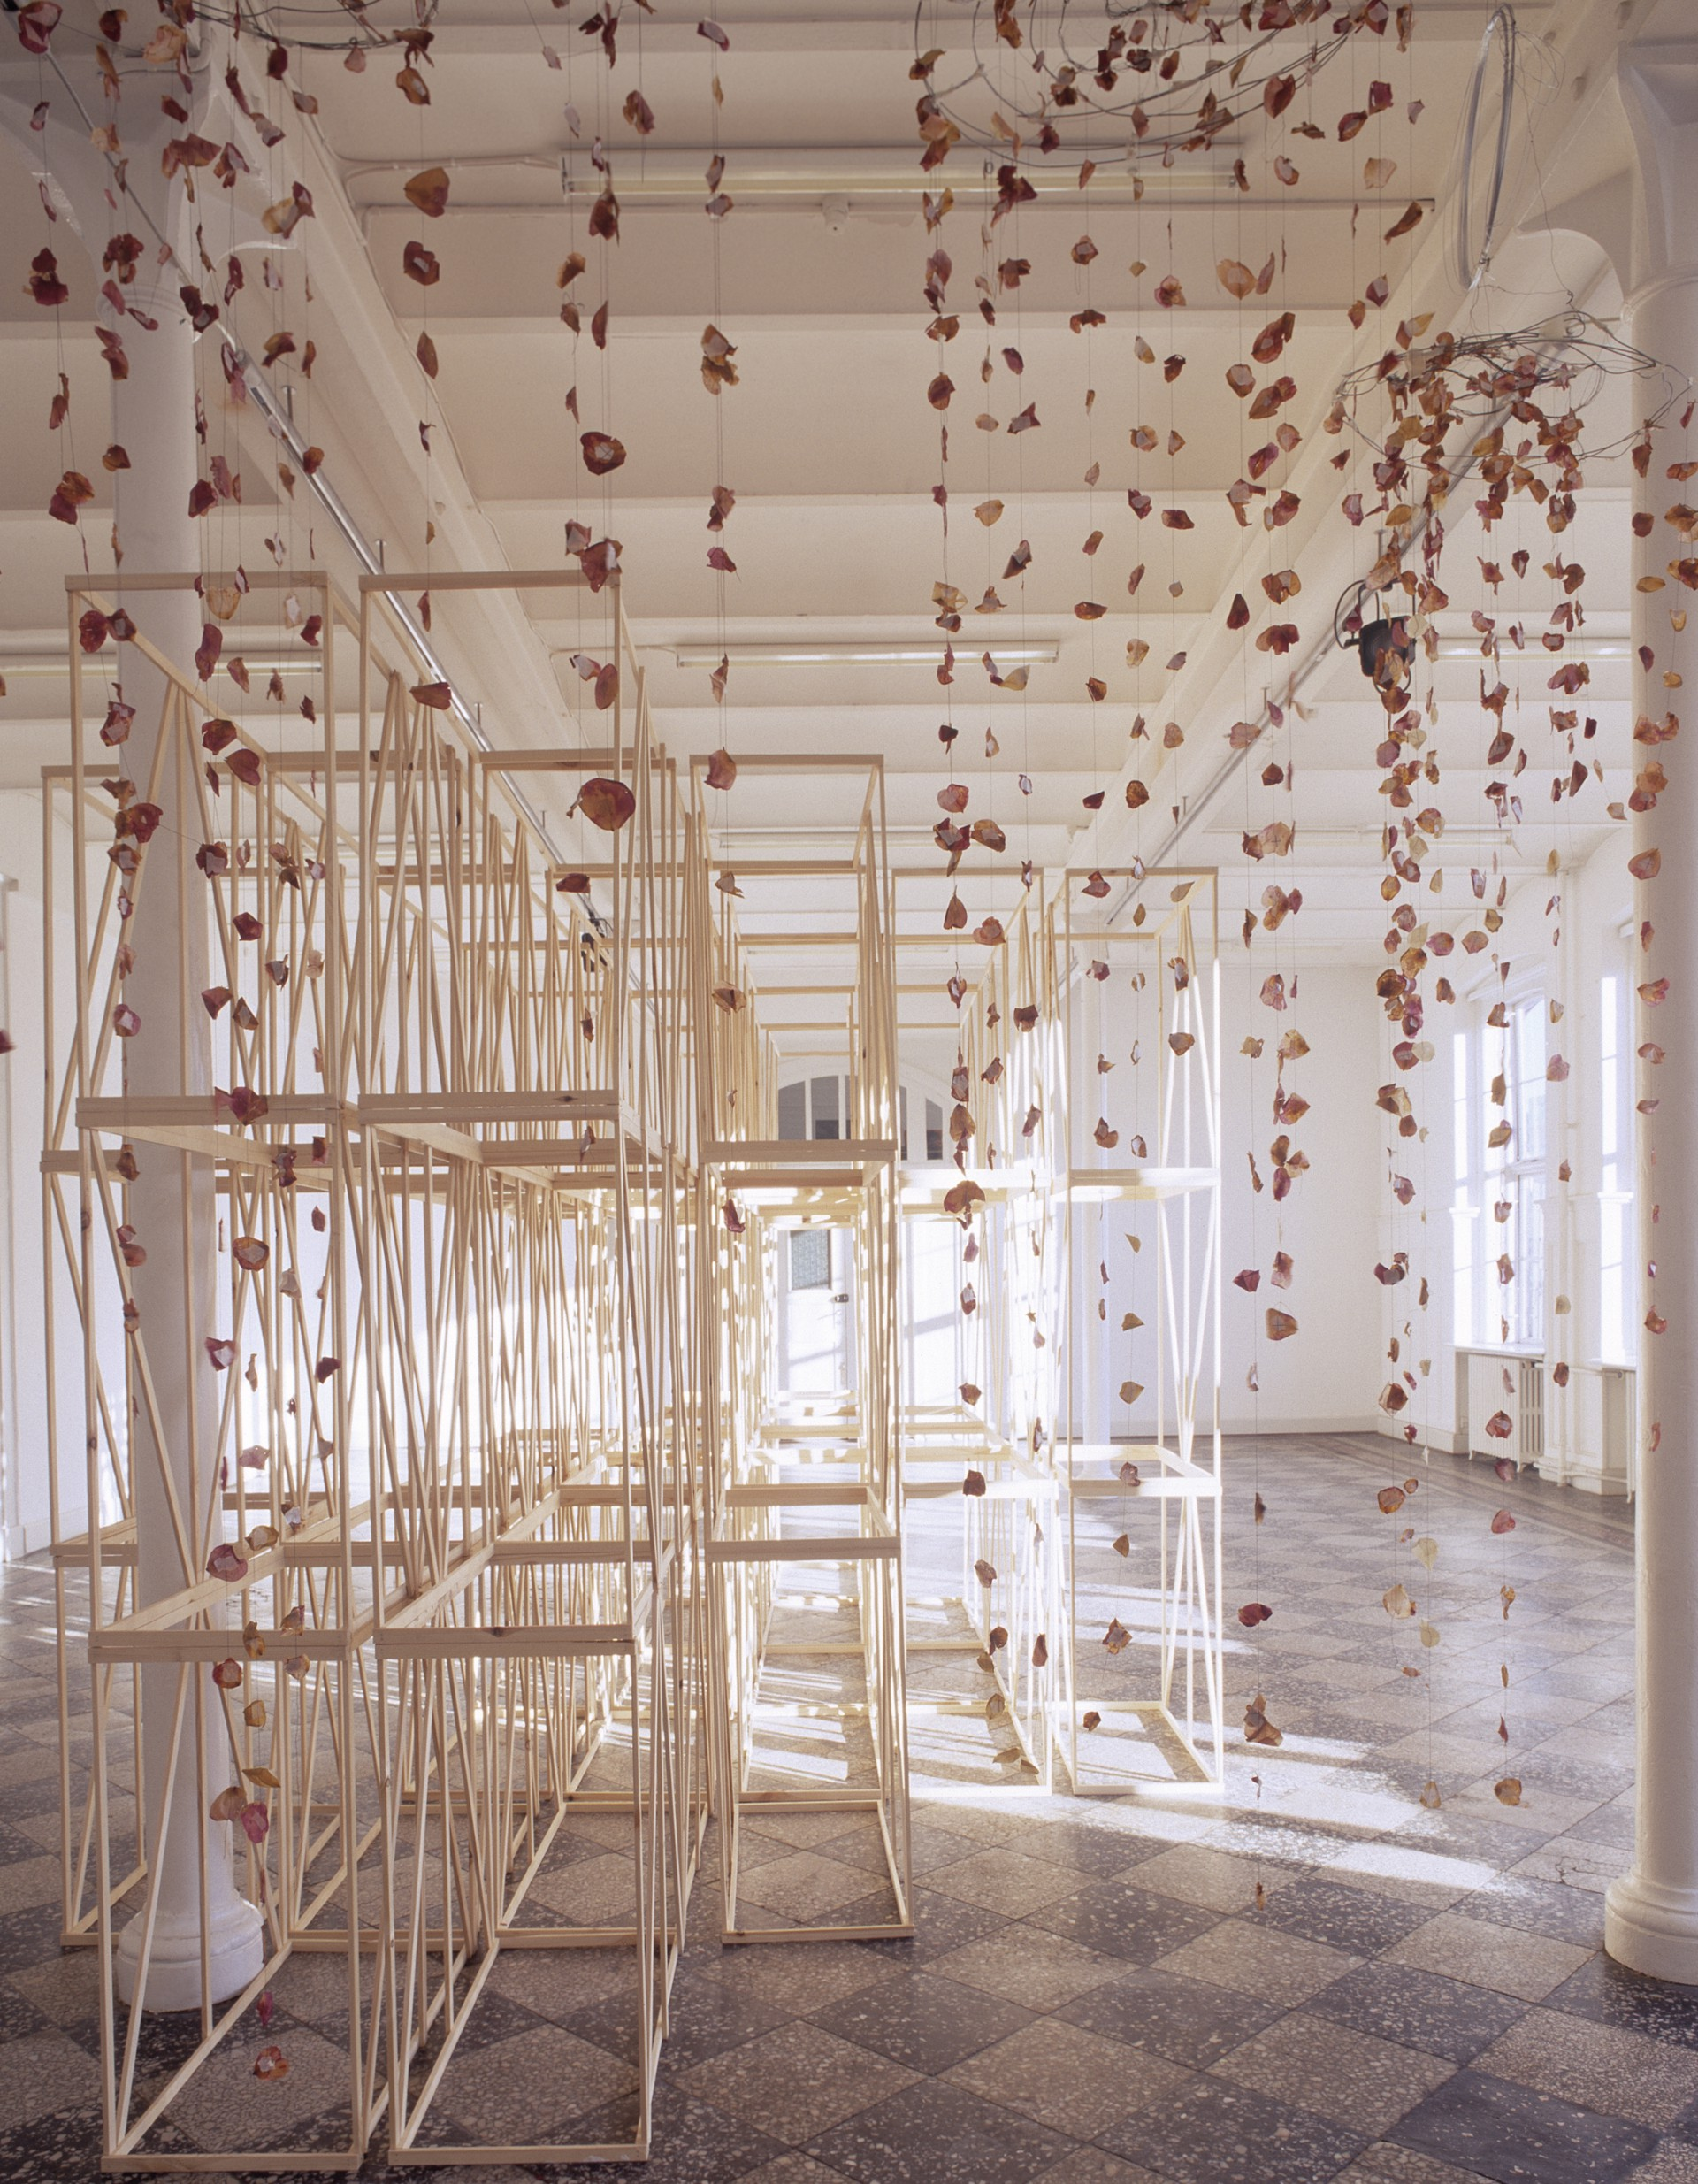 Kirstine Vaaben <i>Danish Ministry of Cultures exhibition hall, Solo,</i> Overgaden 2000